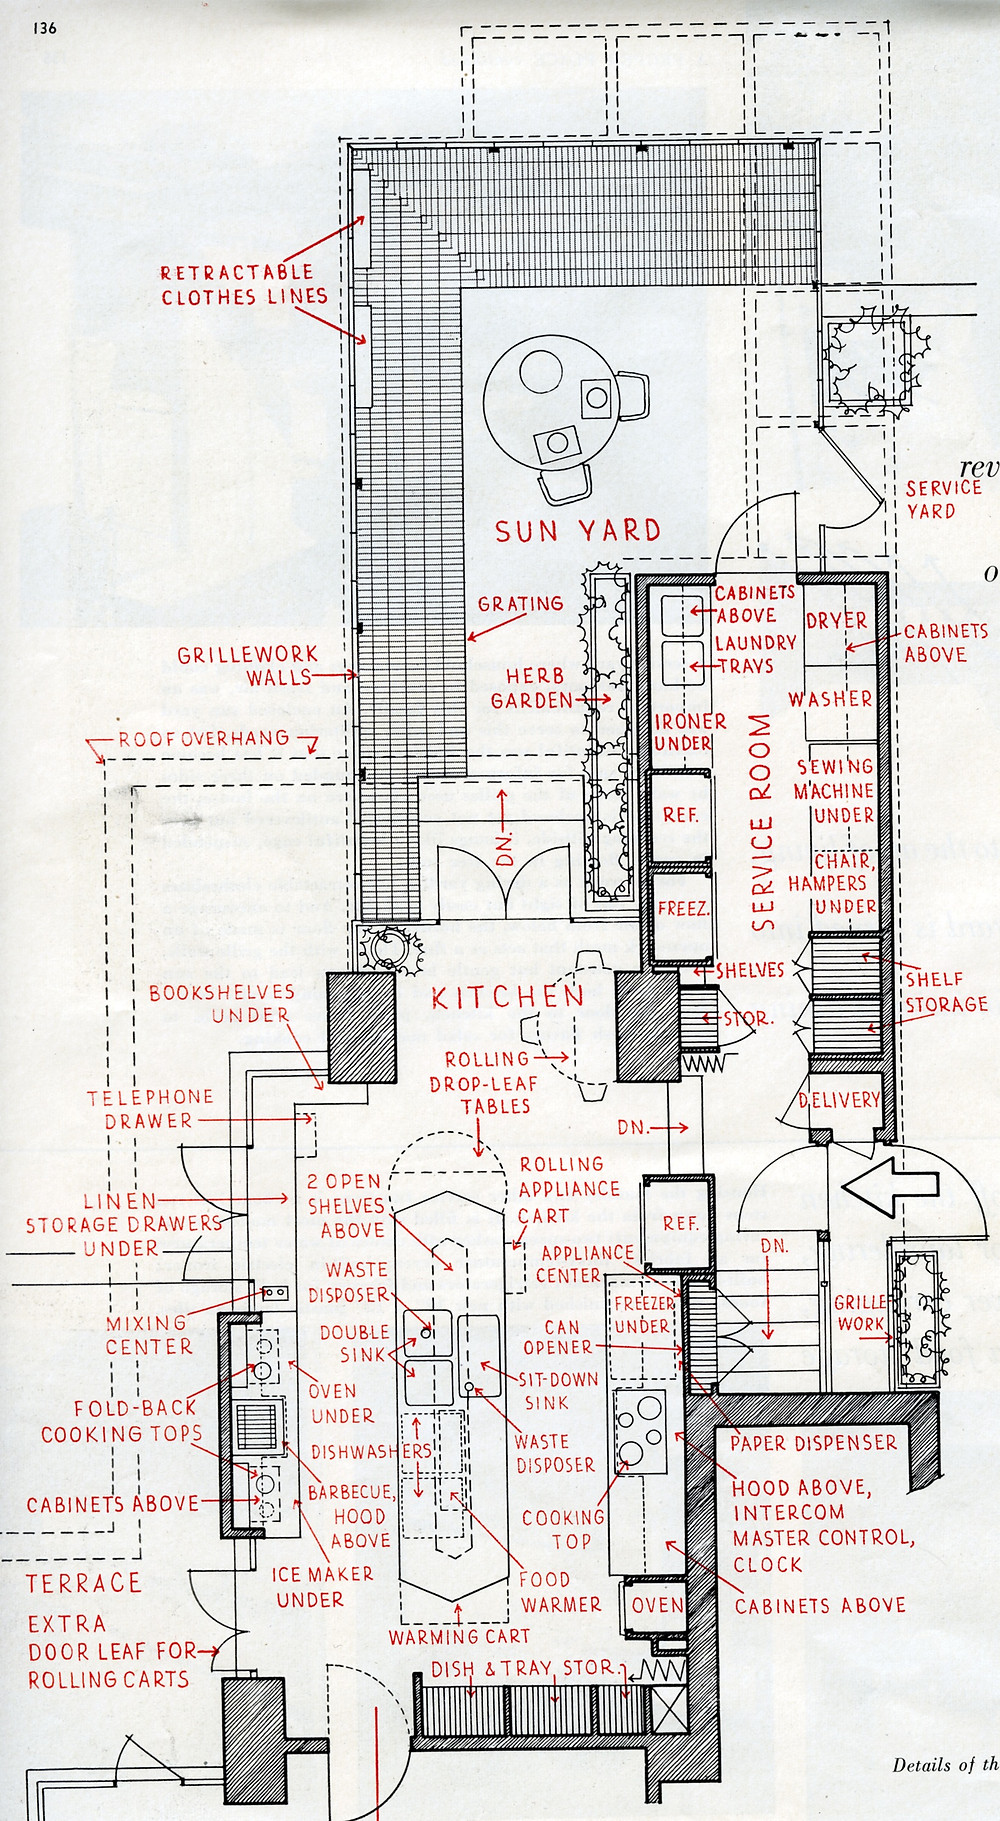 Kitchen plan with electronic appliances called out